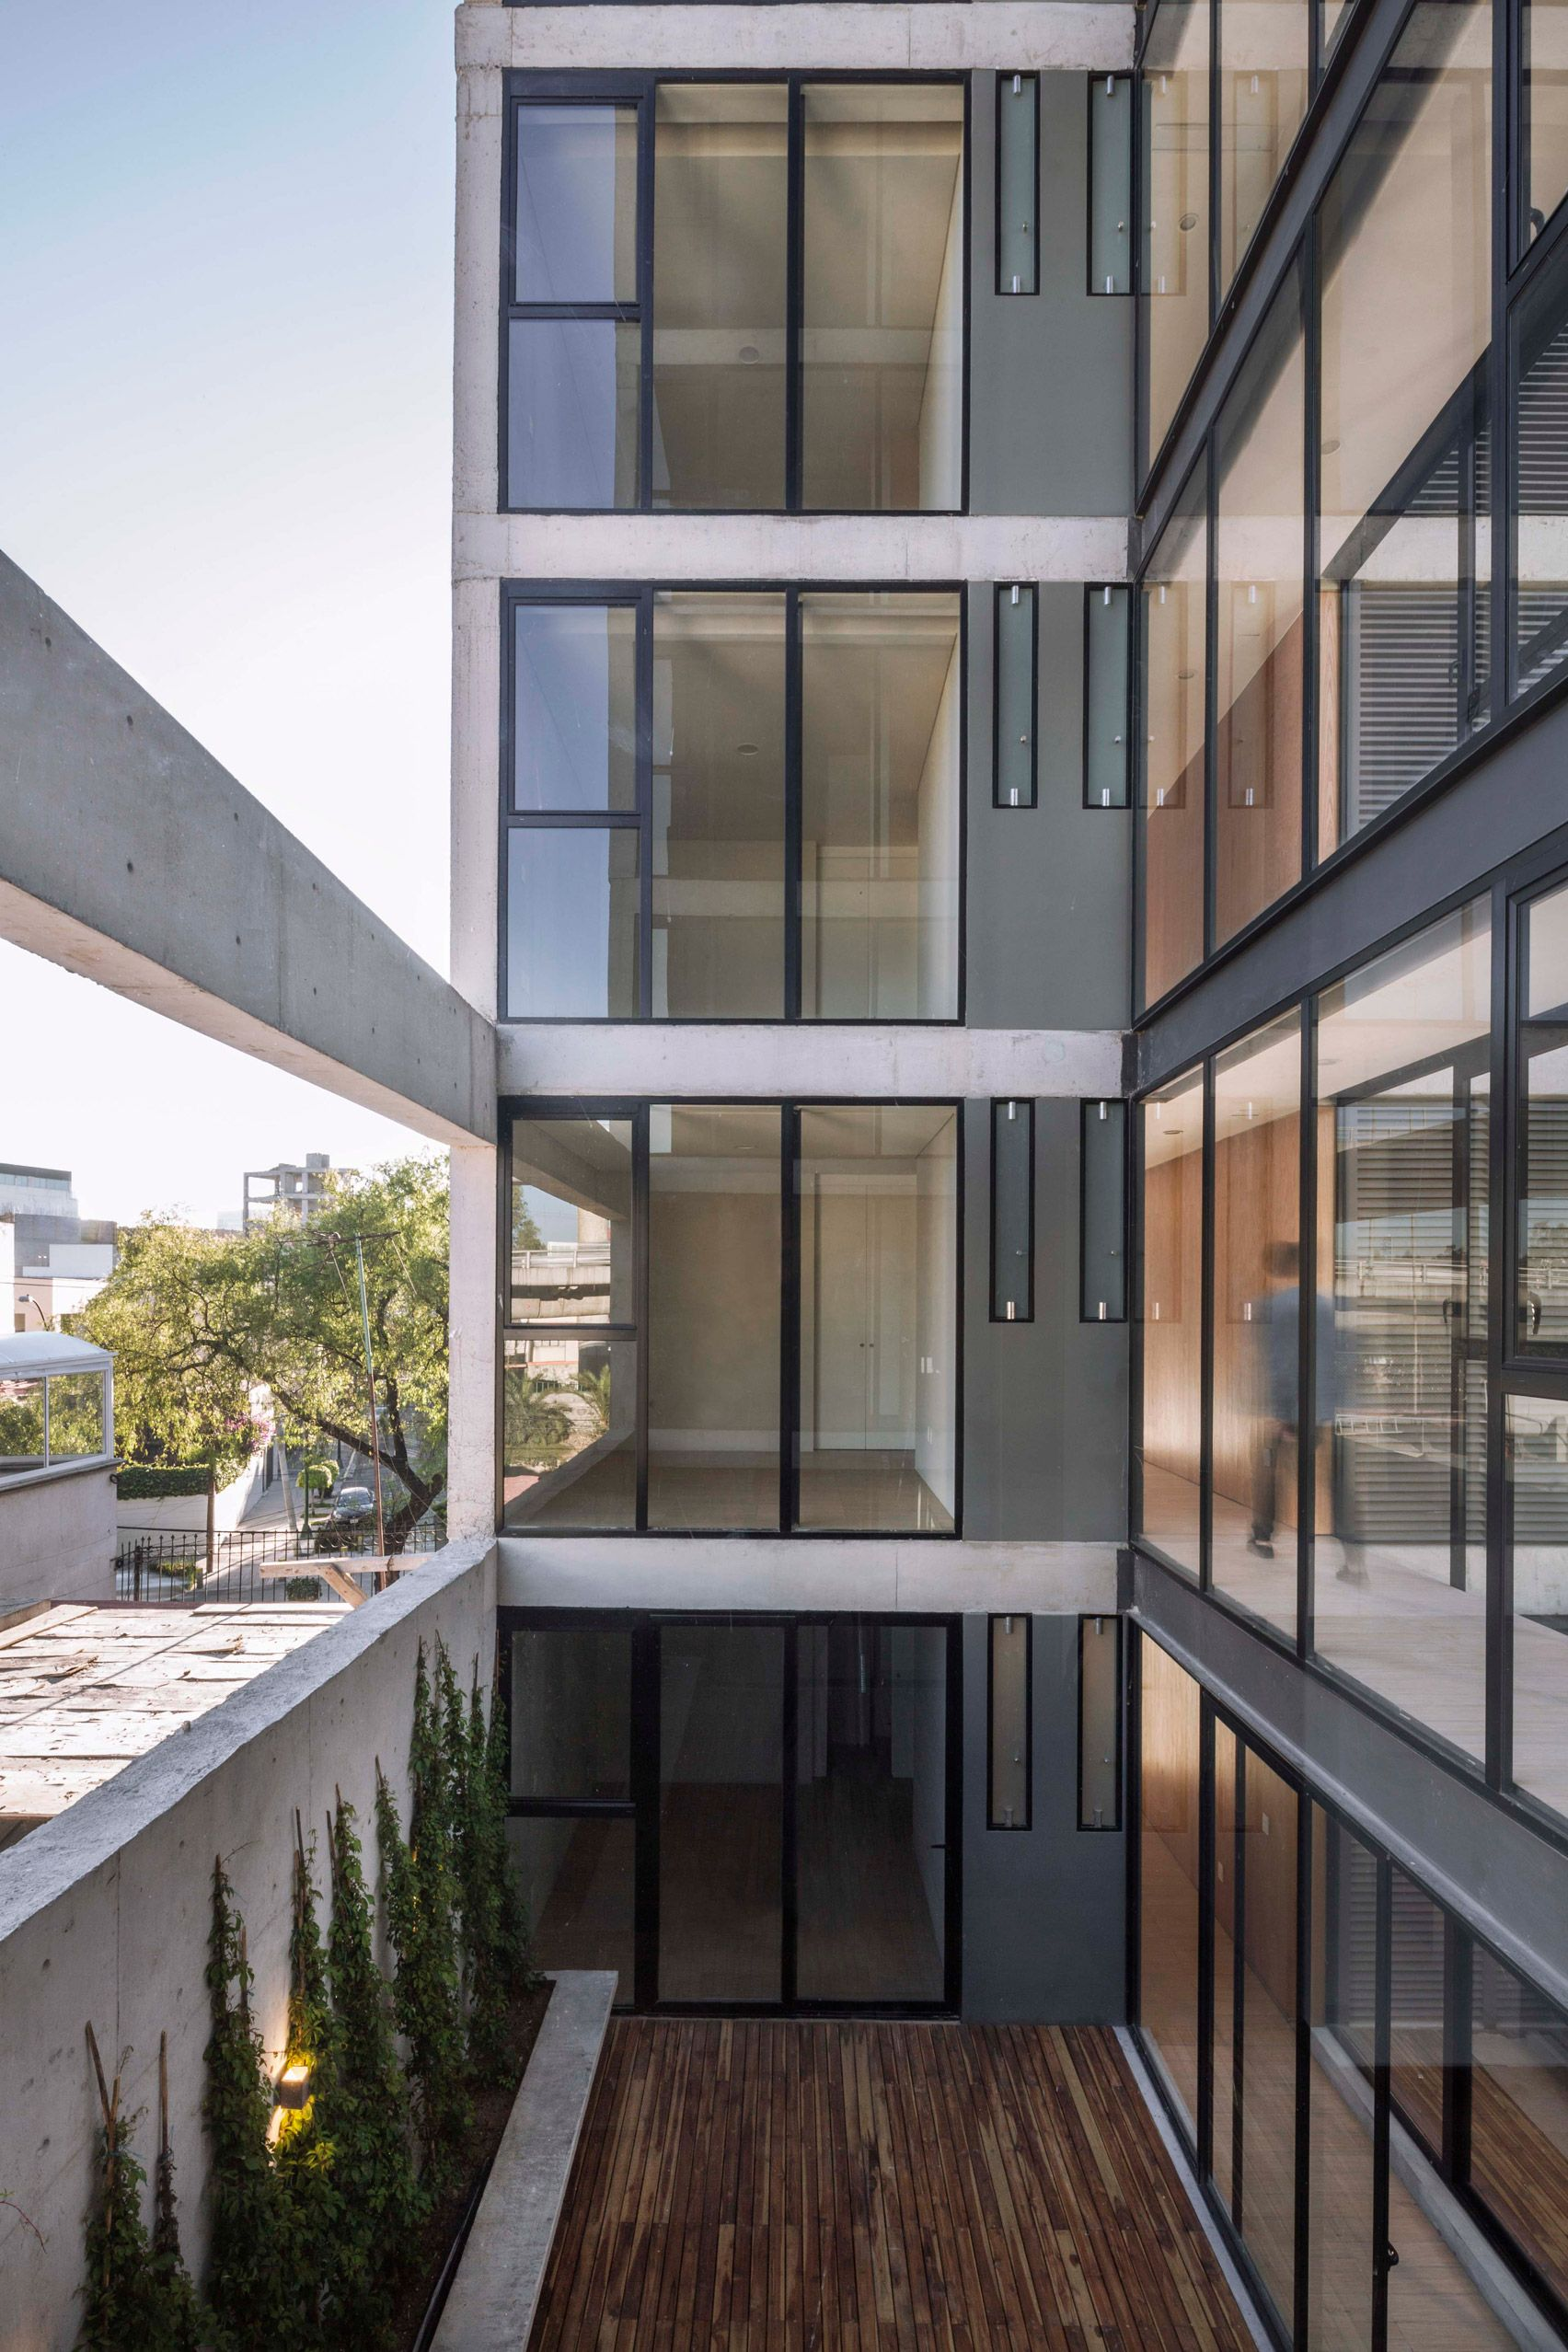 Each Apartment In This Concrete And Glass Block In Mexico City Features A  Balcony Lined With Sliding Glass Doors That Connect It To An Indoor Living  Space.